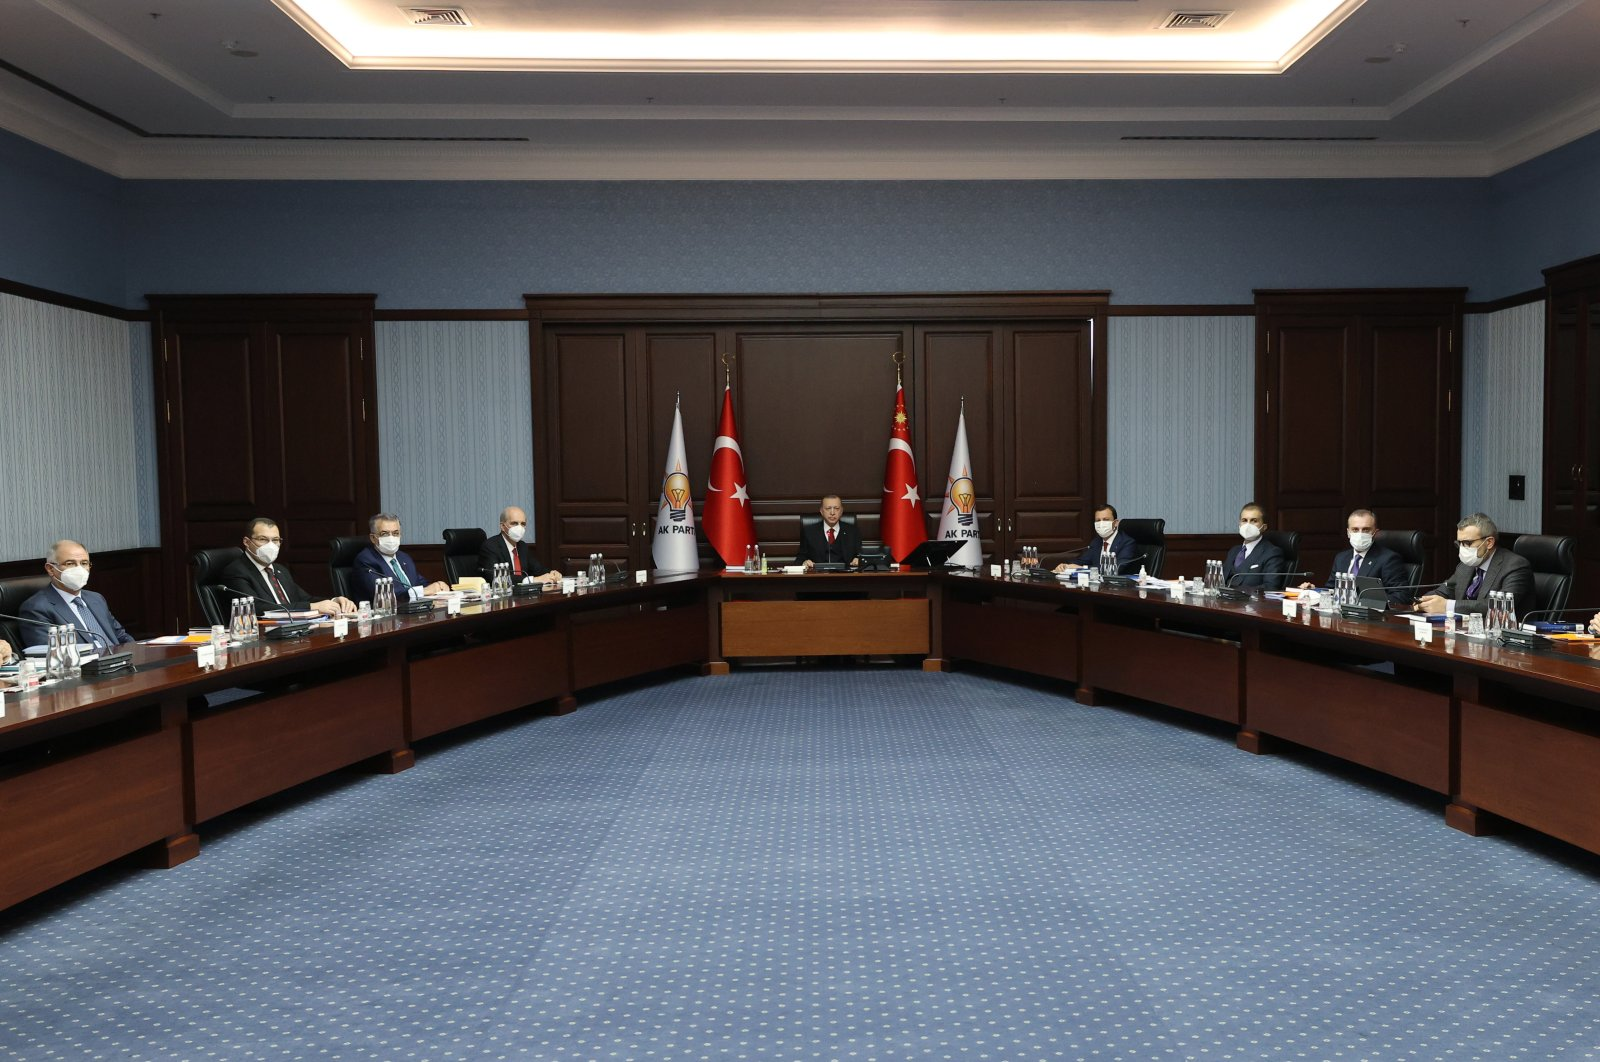 The AK Party's Central Executive Committee (MYK) attends a meeting led by President Recep Tayyip Erdoğan, Ankara, Turkey, Jan. 5, 2021. (AA Photo)